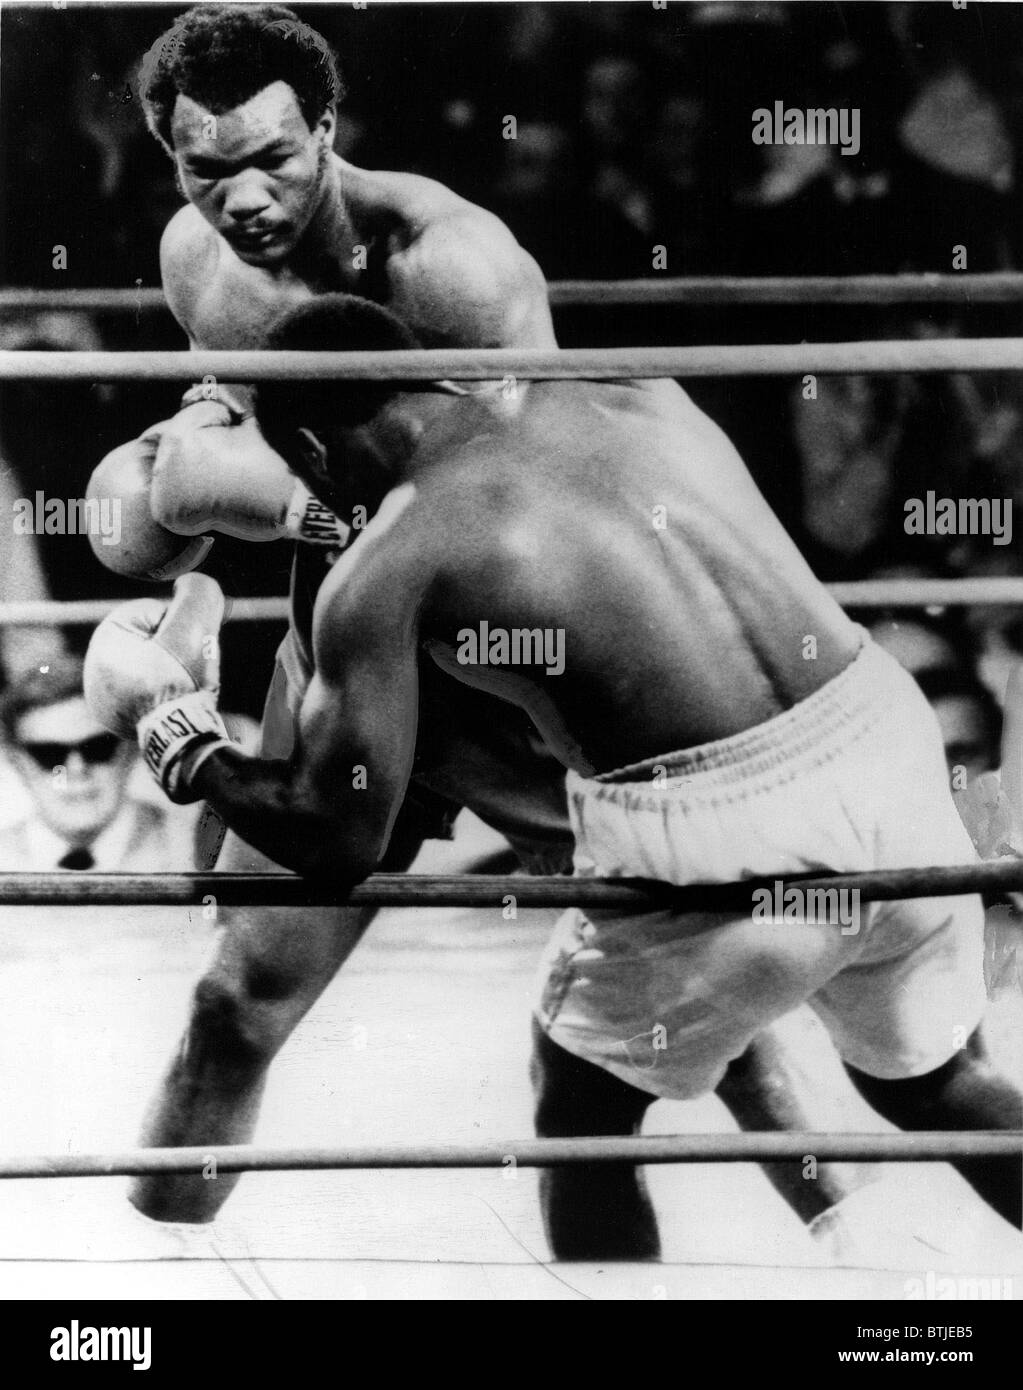 GEORGE FOREMAN- The boxer knocking Joe Frazier down in the second round. Kingston, Jamaica, 1/22/73 - Stock Image